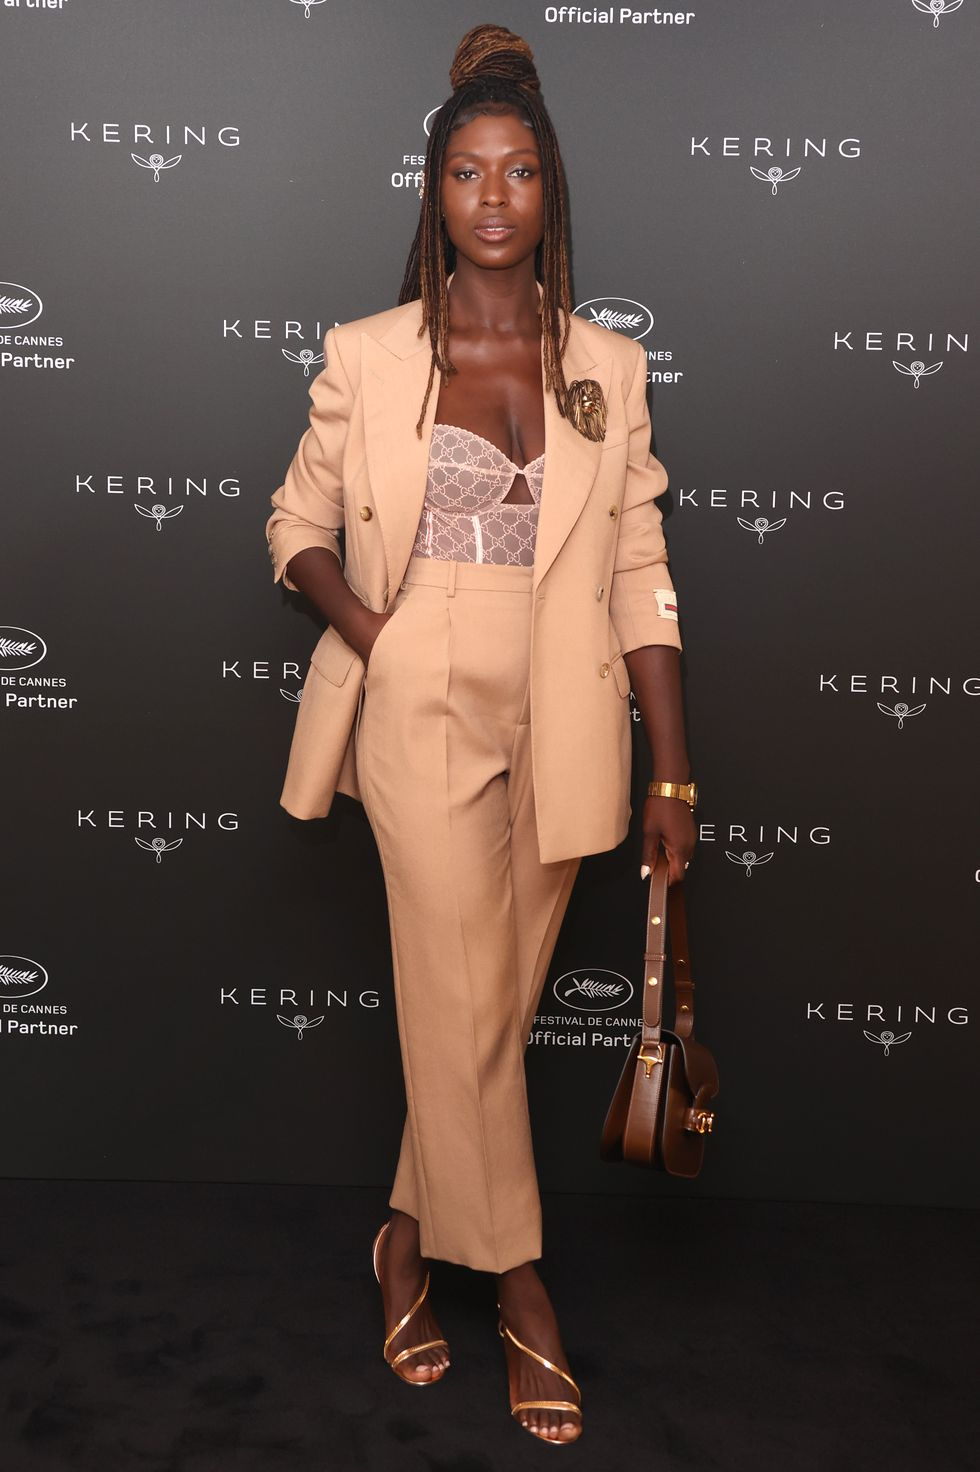 jodie-turner-smith-wore-gucci-suit-kering-women-in-motion-awards-in-cannes